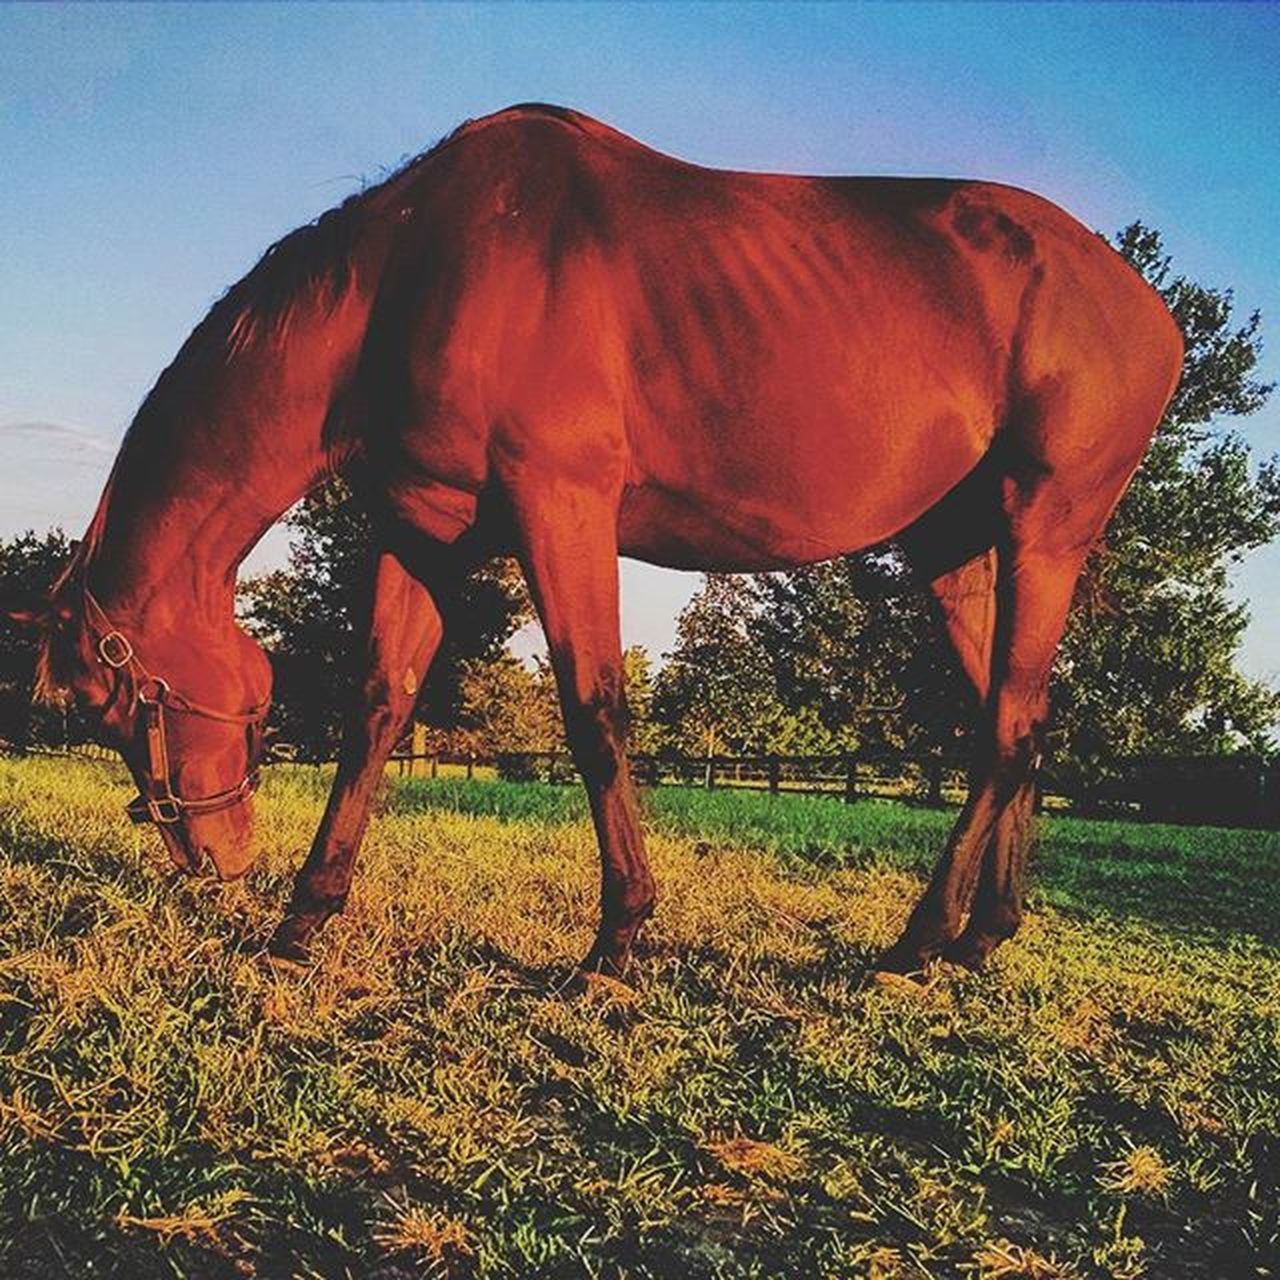 Grazing into the Sunset at RamseyFarm Selfie Thoroughbred Farms Selfies Thoroghbredracing Farm Nicholasvilleky